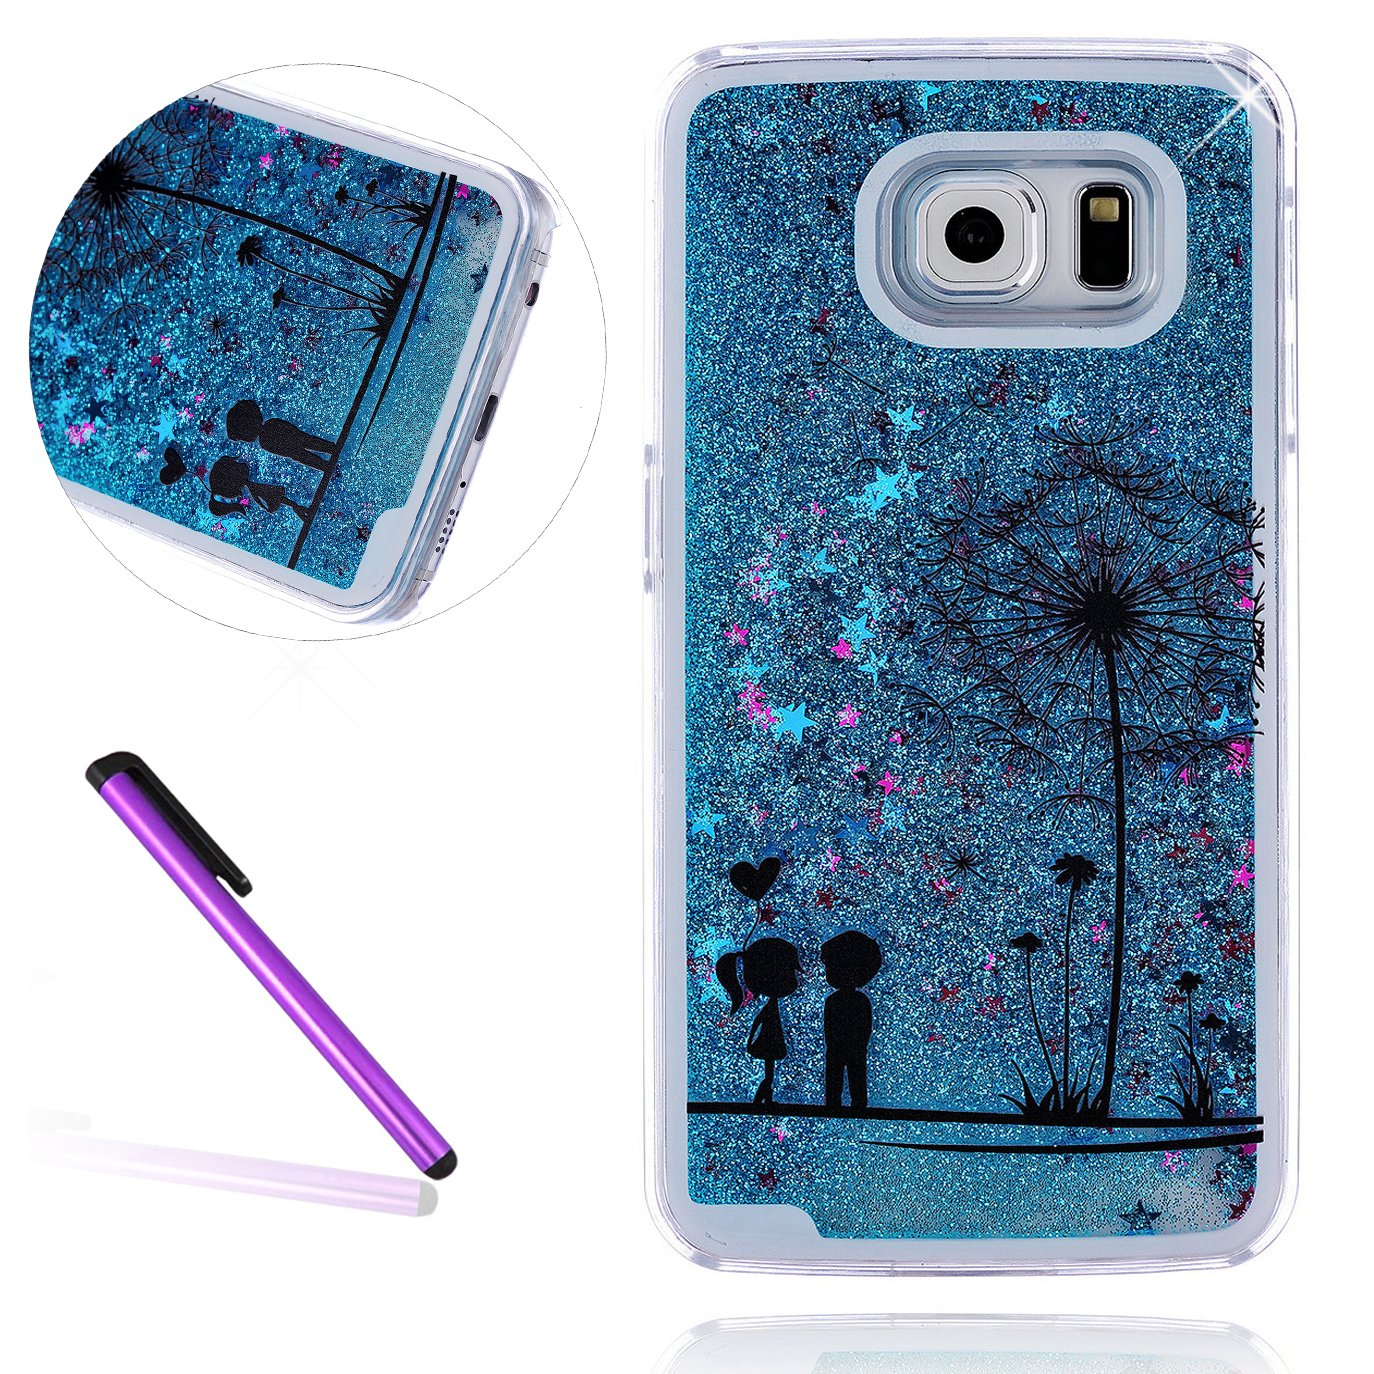 EMAXELERS Samsung Galaxy S7 Coque 2016 Bling Diamnt Glitter Cristal Slim Liquied Liquid Flowing Souple PC Bumper Cas ouverture Etui pour Samsung Galaxy S7, Silver Liquid-Wearing Colorful Dress Girl